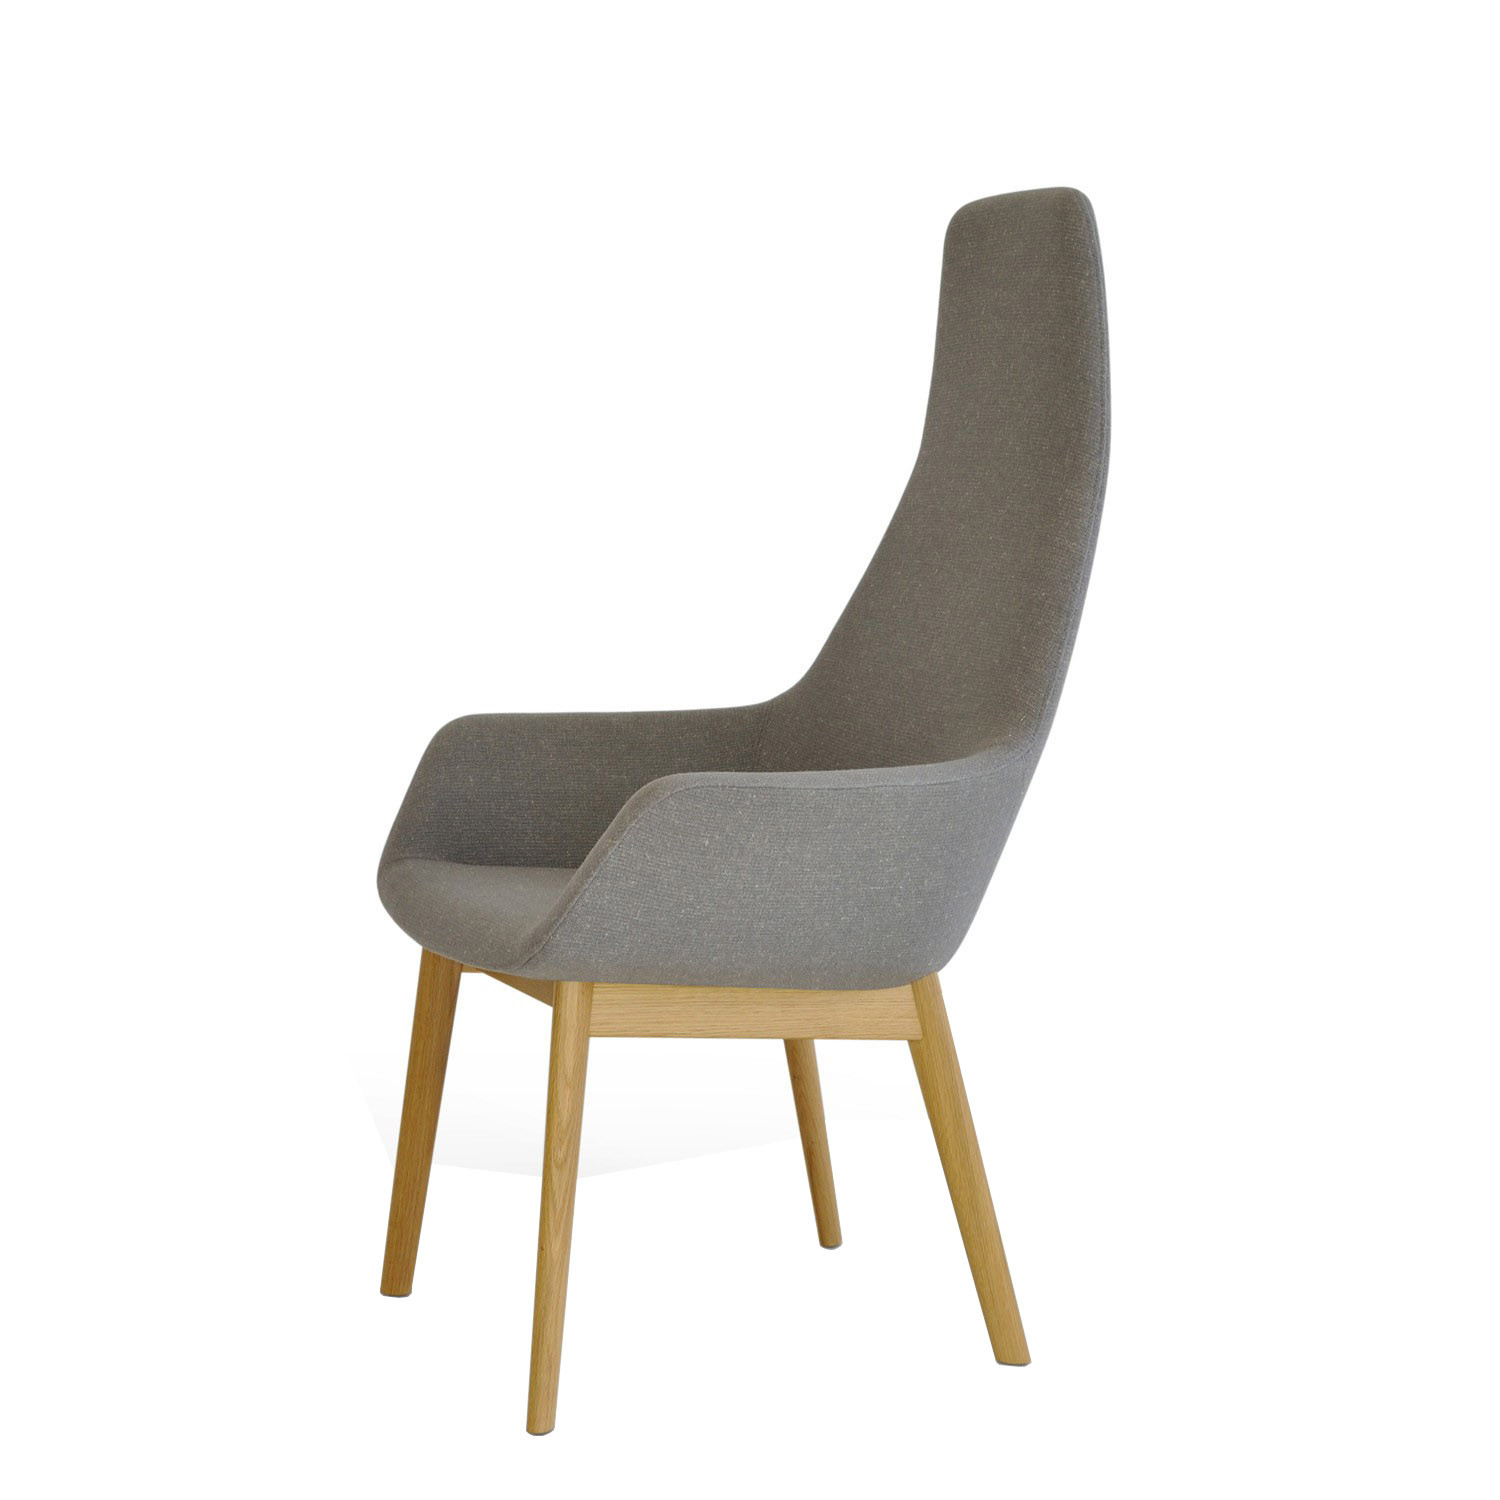 Hm86 Lounge Armchair with Wooden Legs